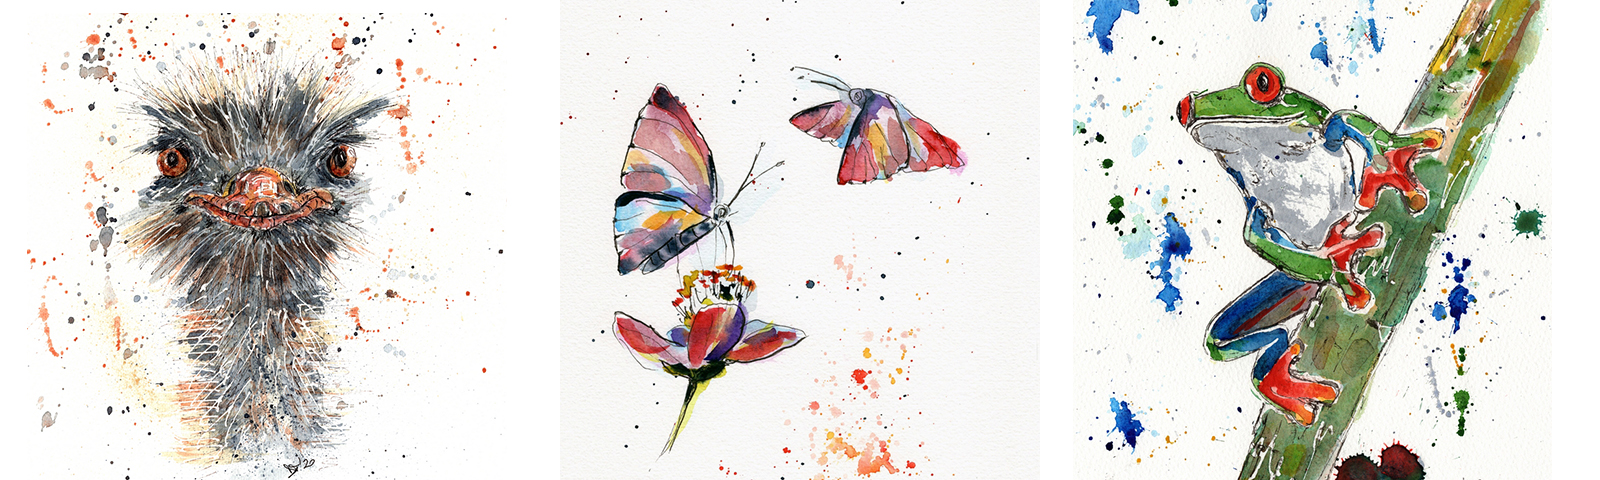 2021 Wildlife - composite of three wildlife works, Ink and watercolour on paper, D Tovey 2021 at Pie Factory Margate